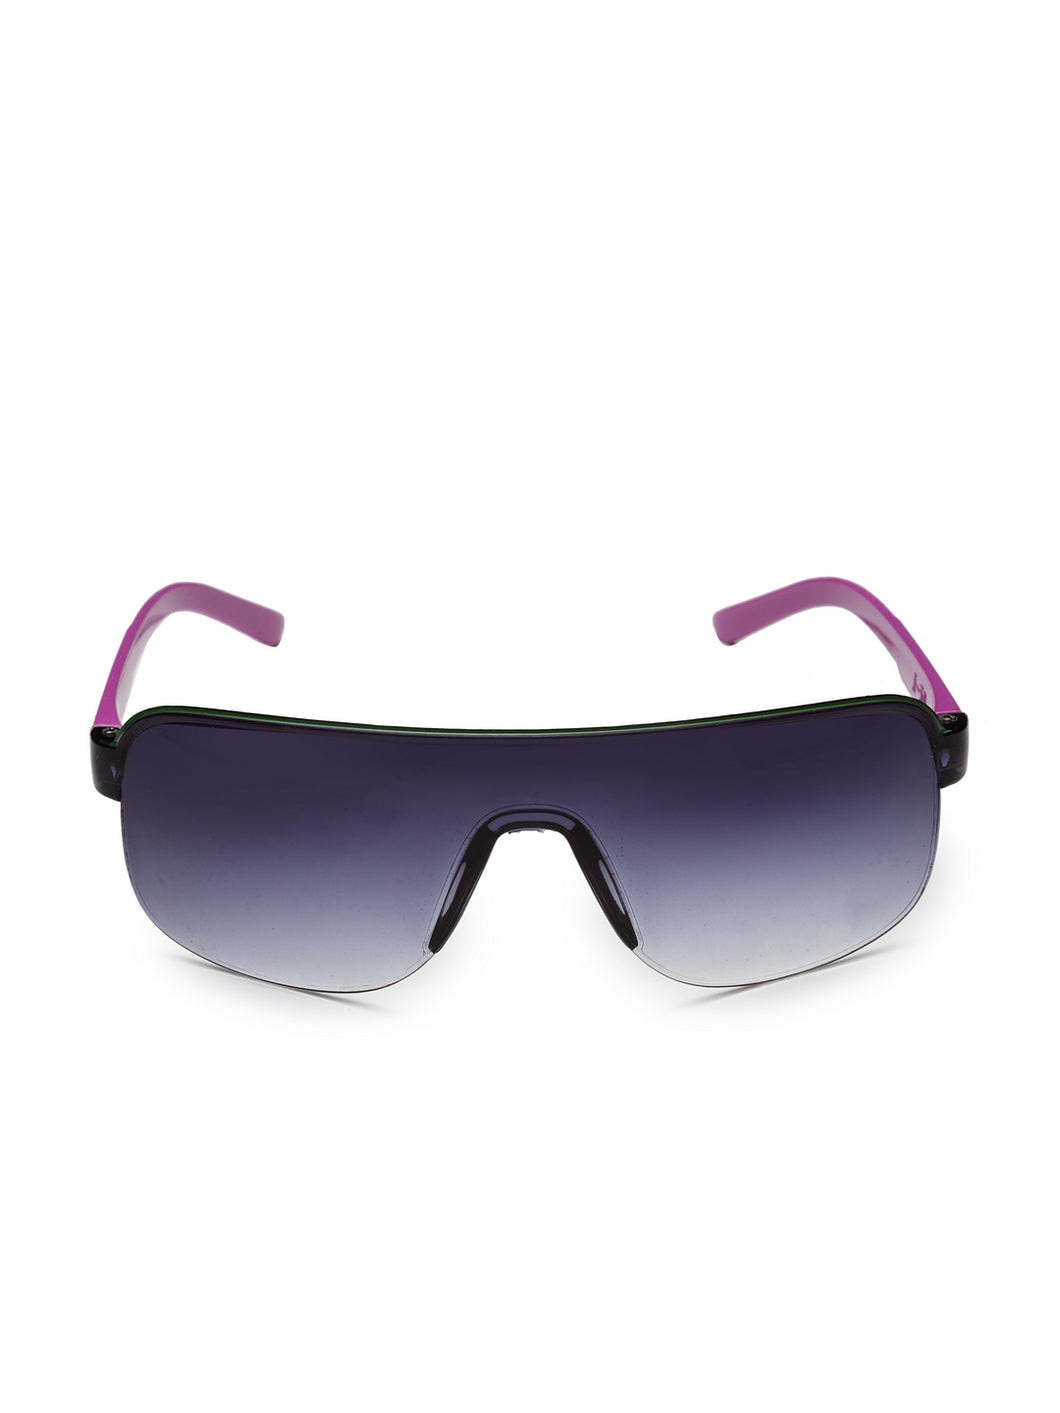 Stol'n Premium Attractive Fashionable UV-Protected Sports Shape Sunglasses - Purple